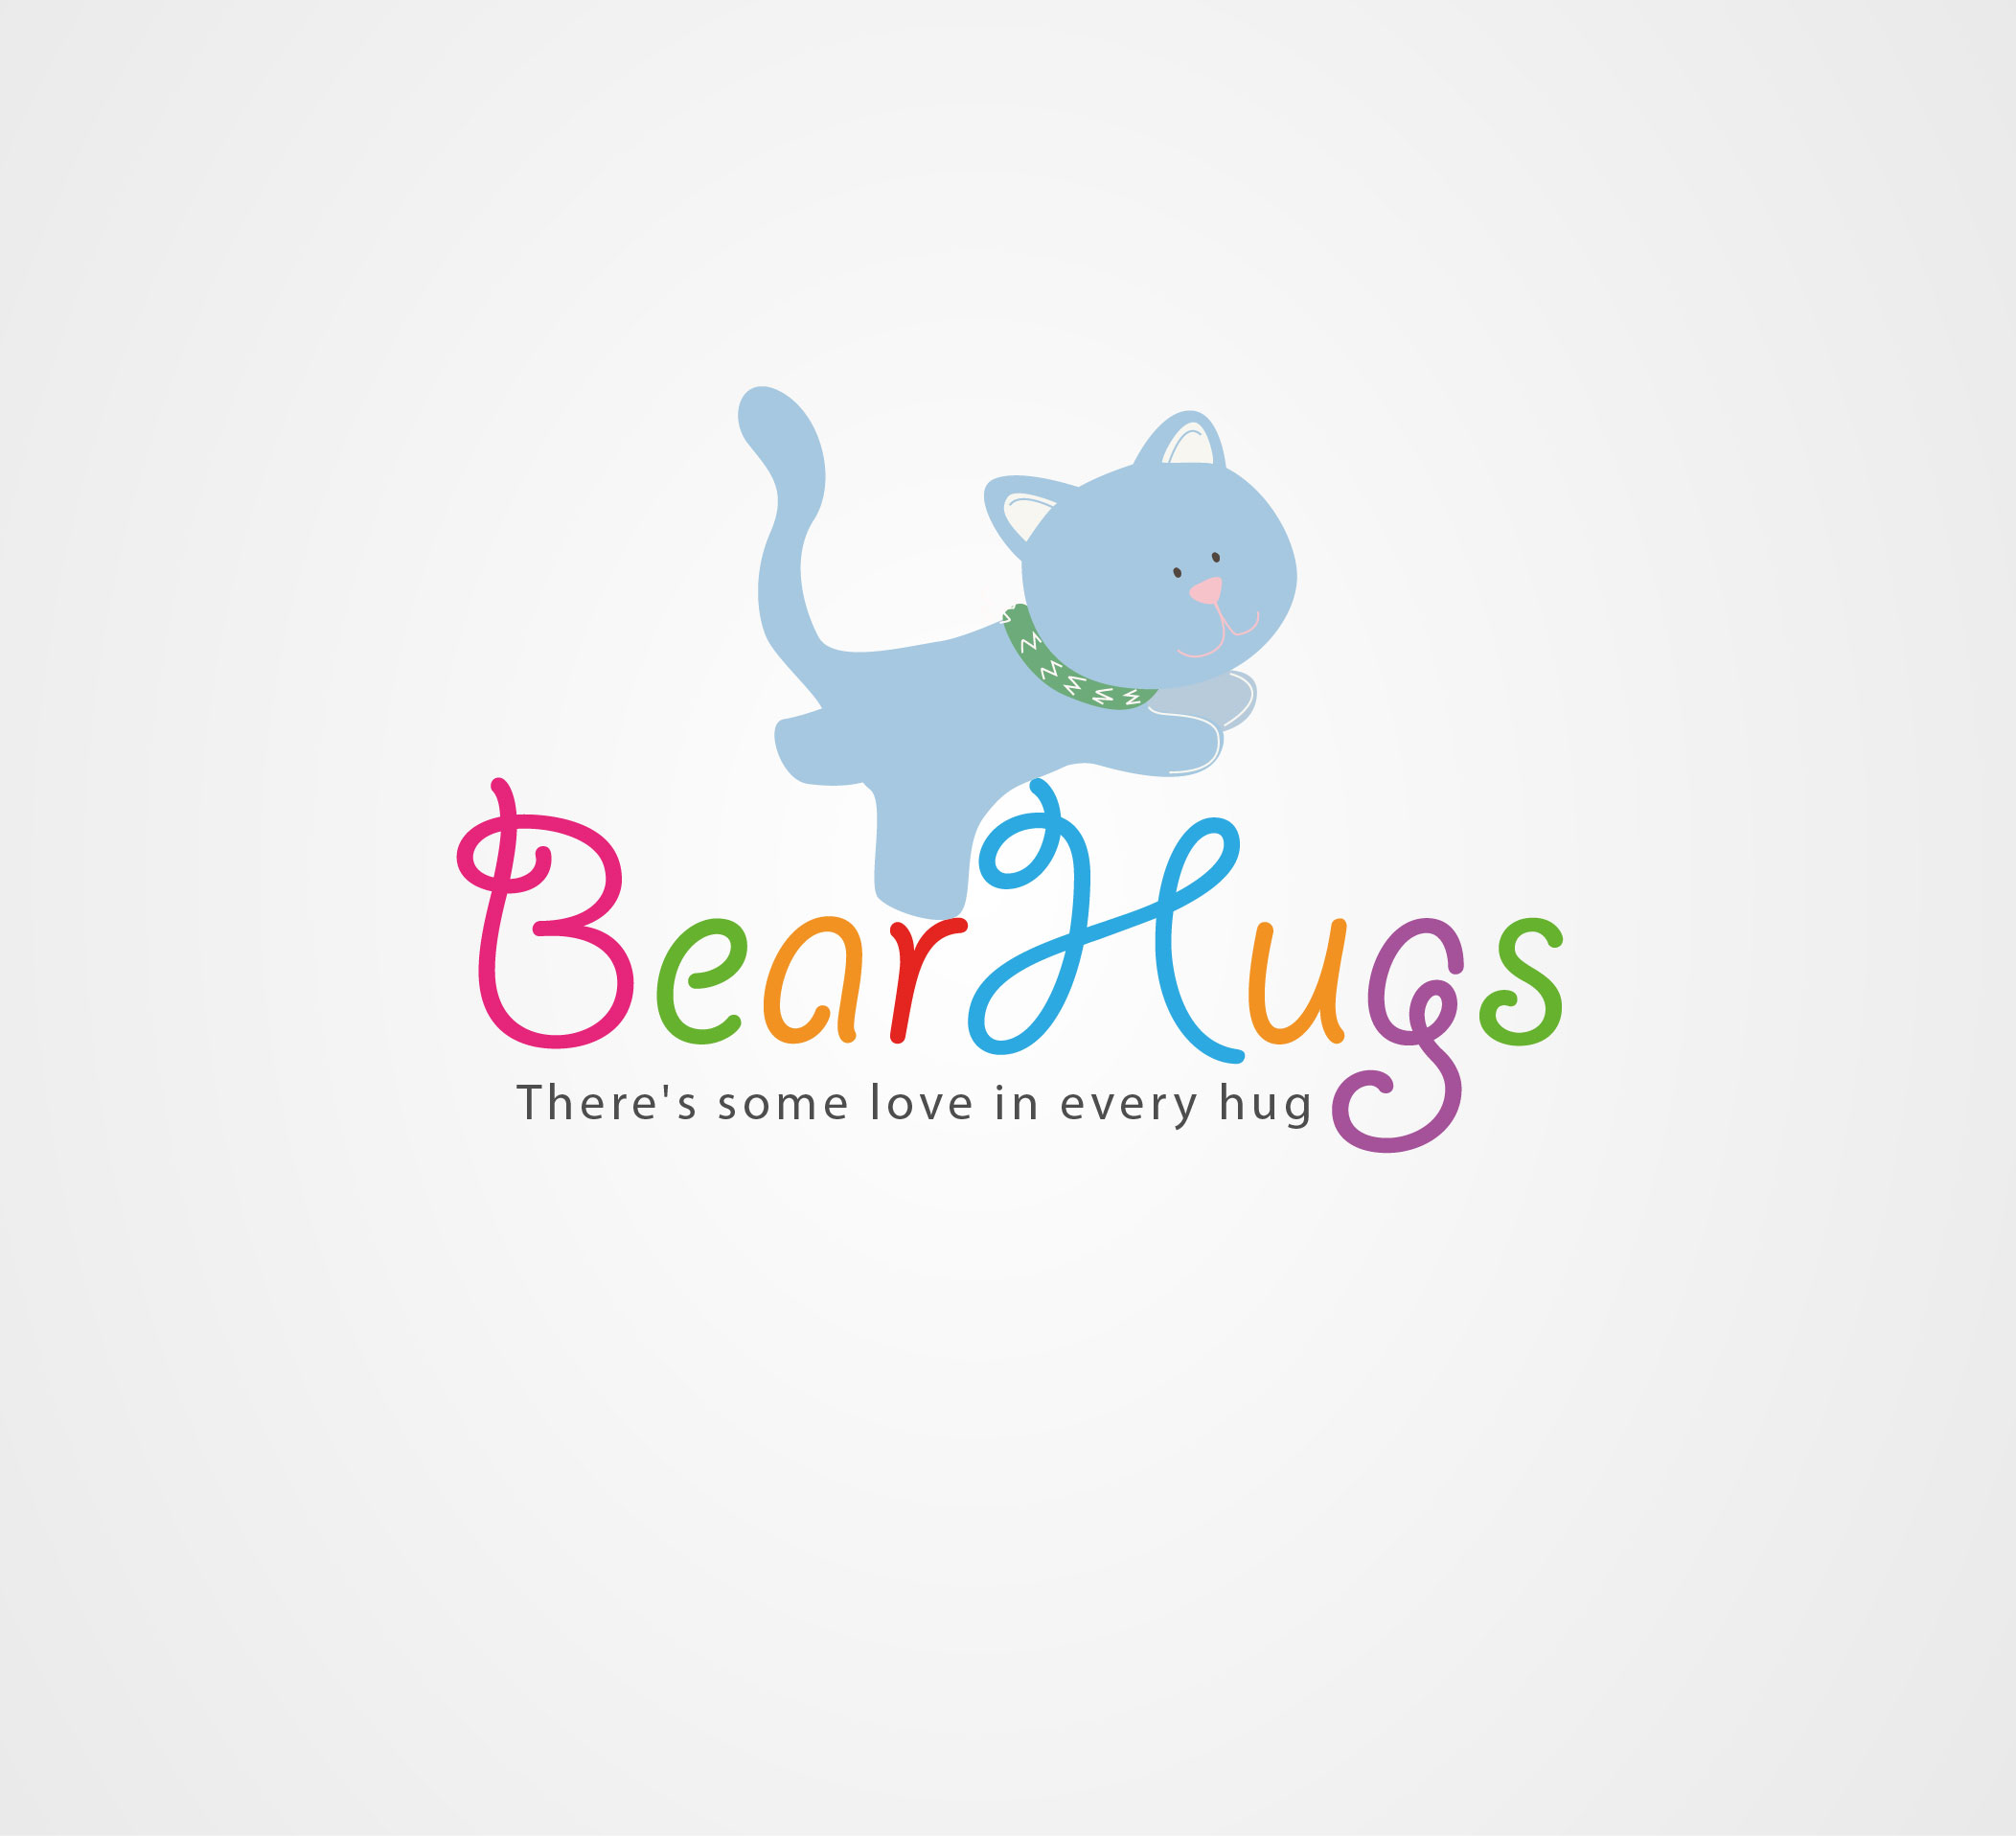 Logo Design by Darina Dimitrova - Entry No. 53 in the Logo Design Contest Inspiring Logo Design for BearHugs.